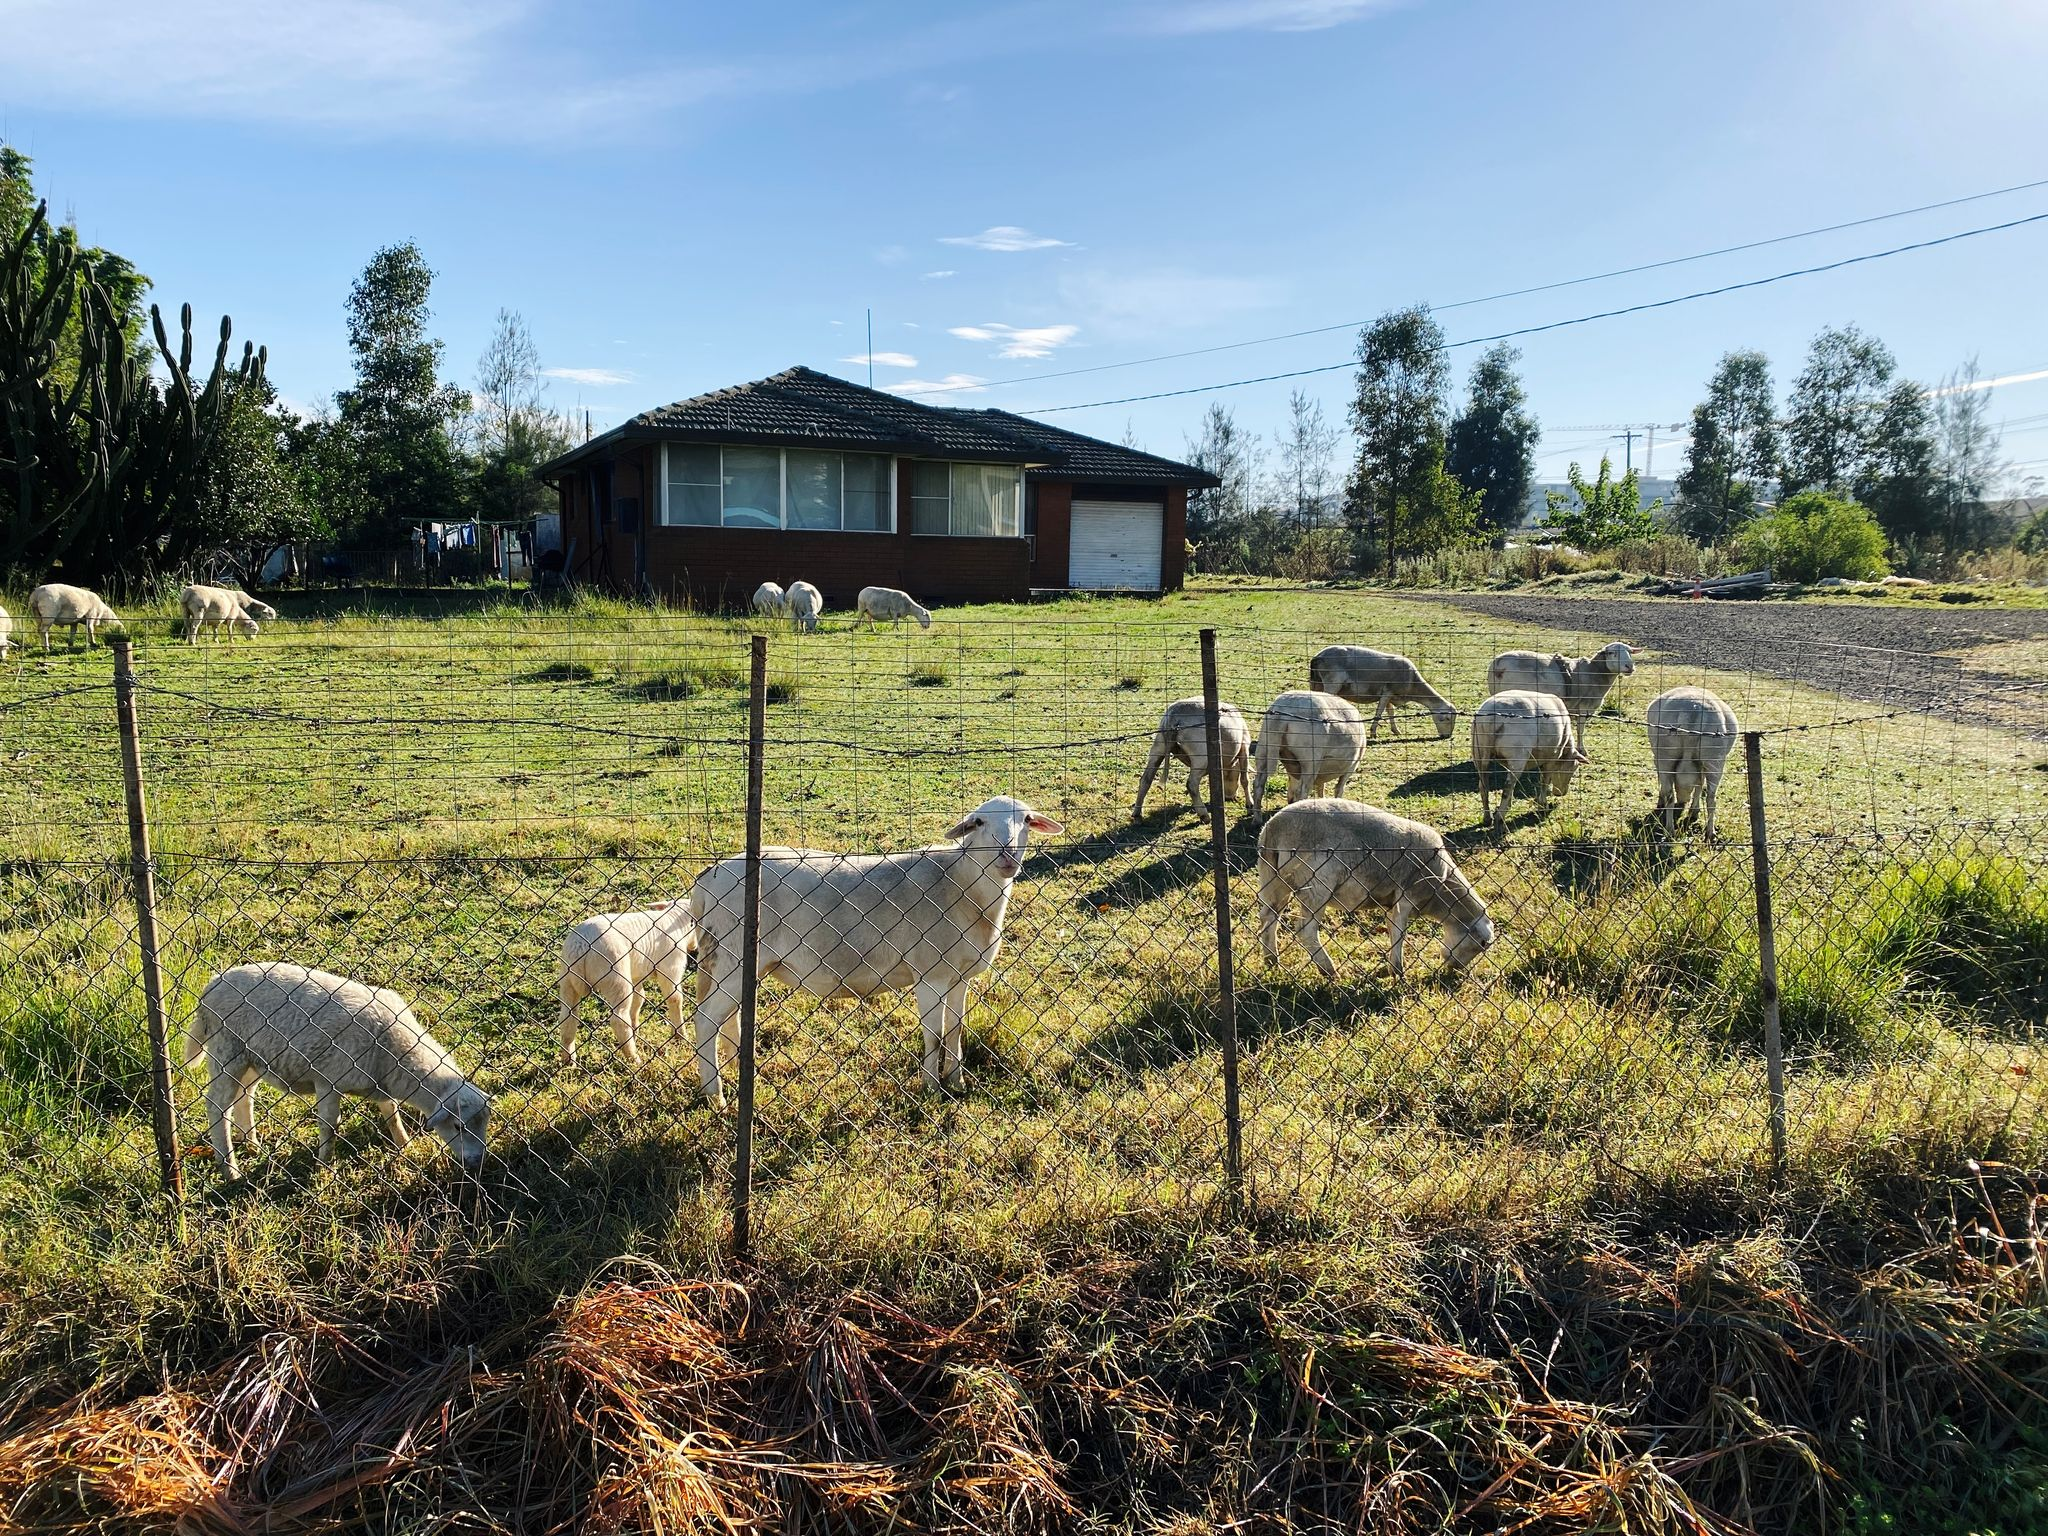 A photo of a bunch of sheep and a few lambs grazing on the grass in the front yard of an old house that I'm assuming is abandoned, from the look of it.